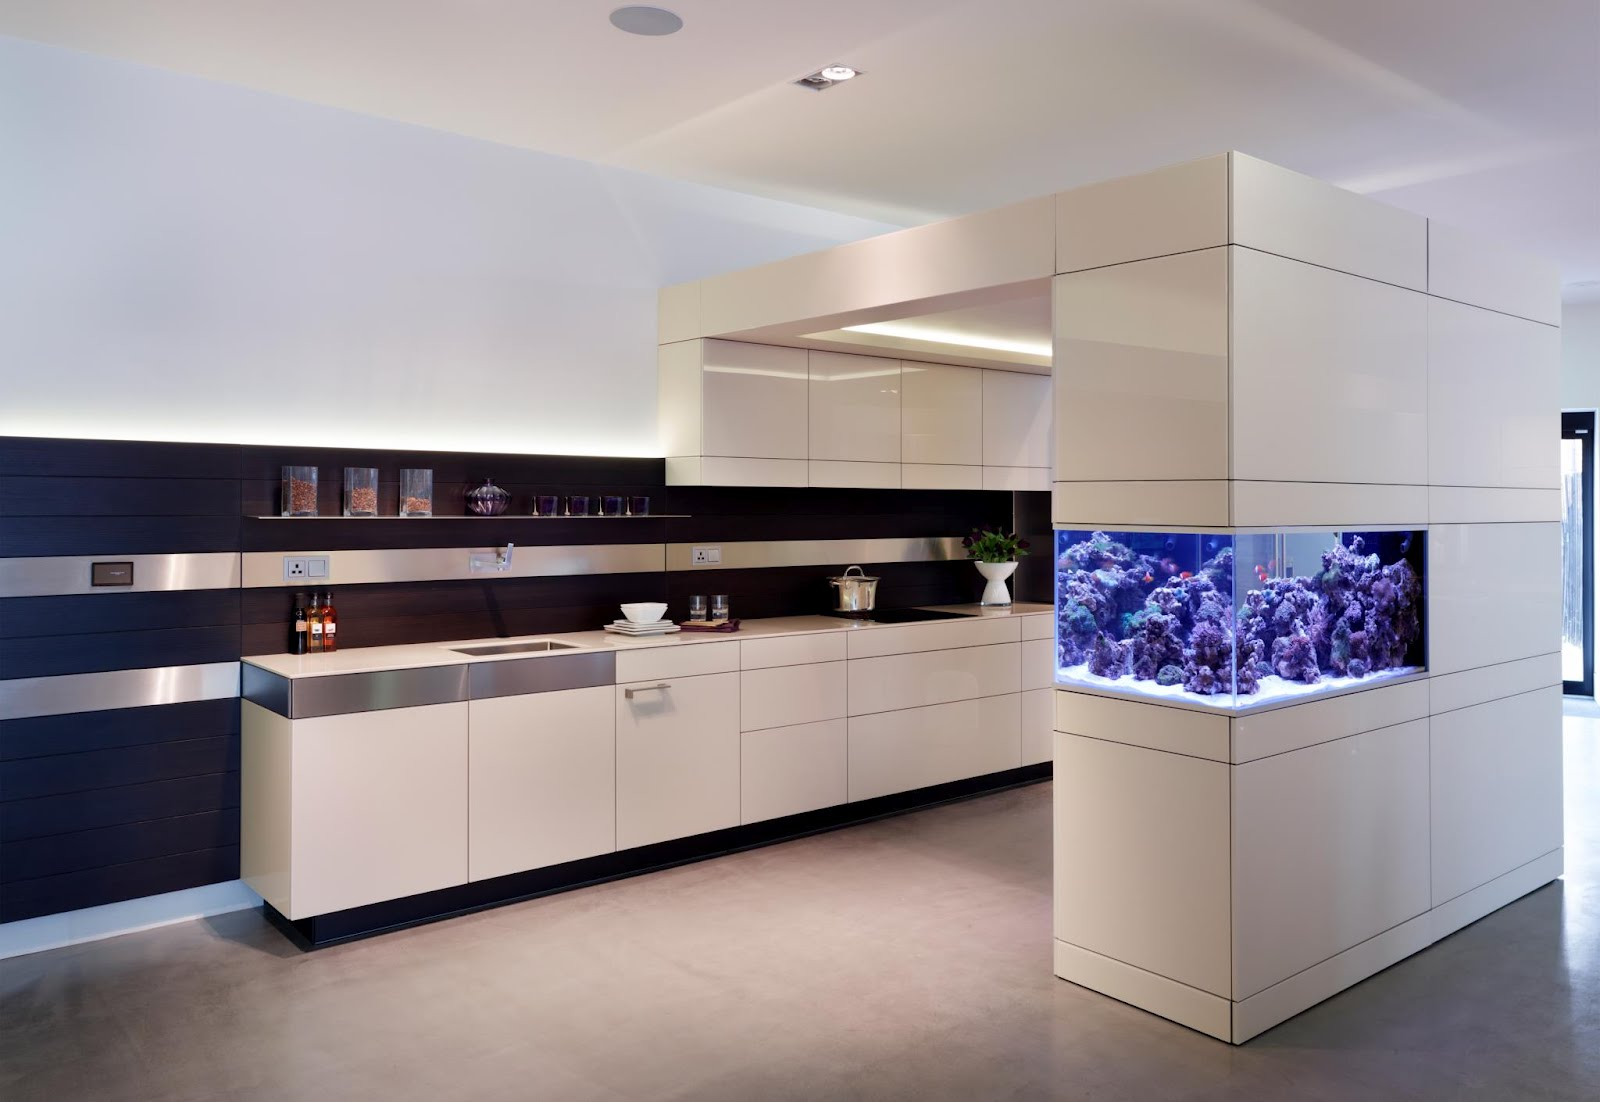 Kitchen Island Fish Tank if it's hip, it's here (archives): no room for an aquarium? think